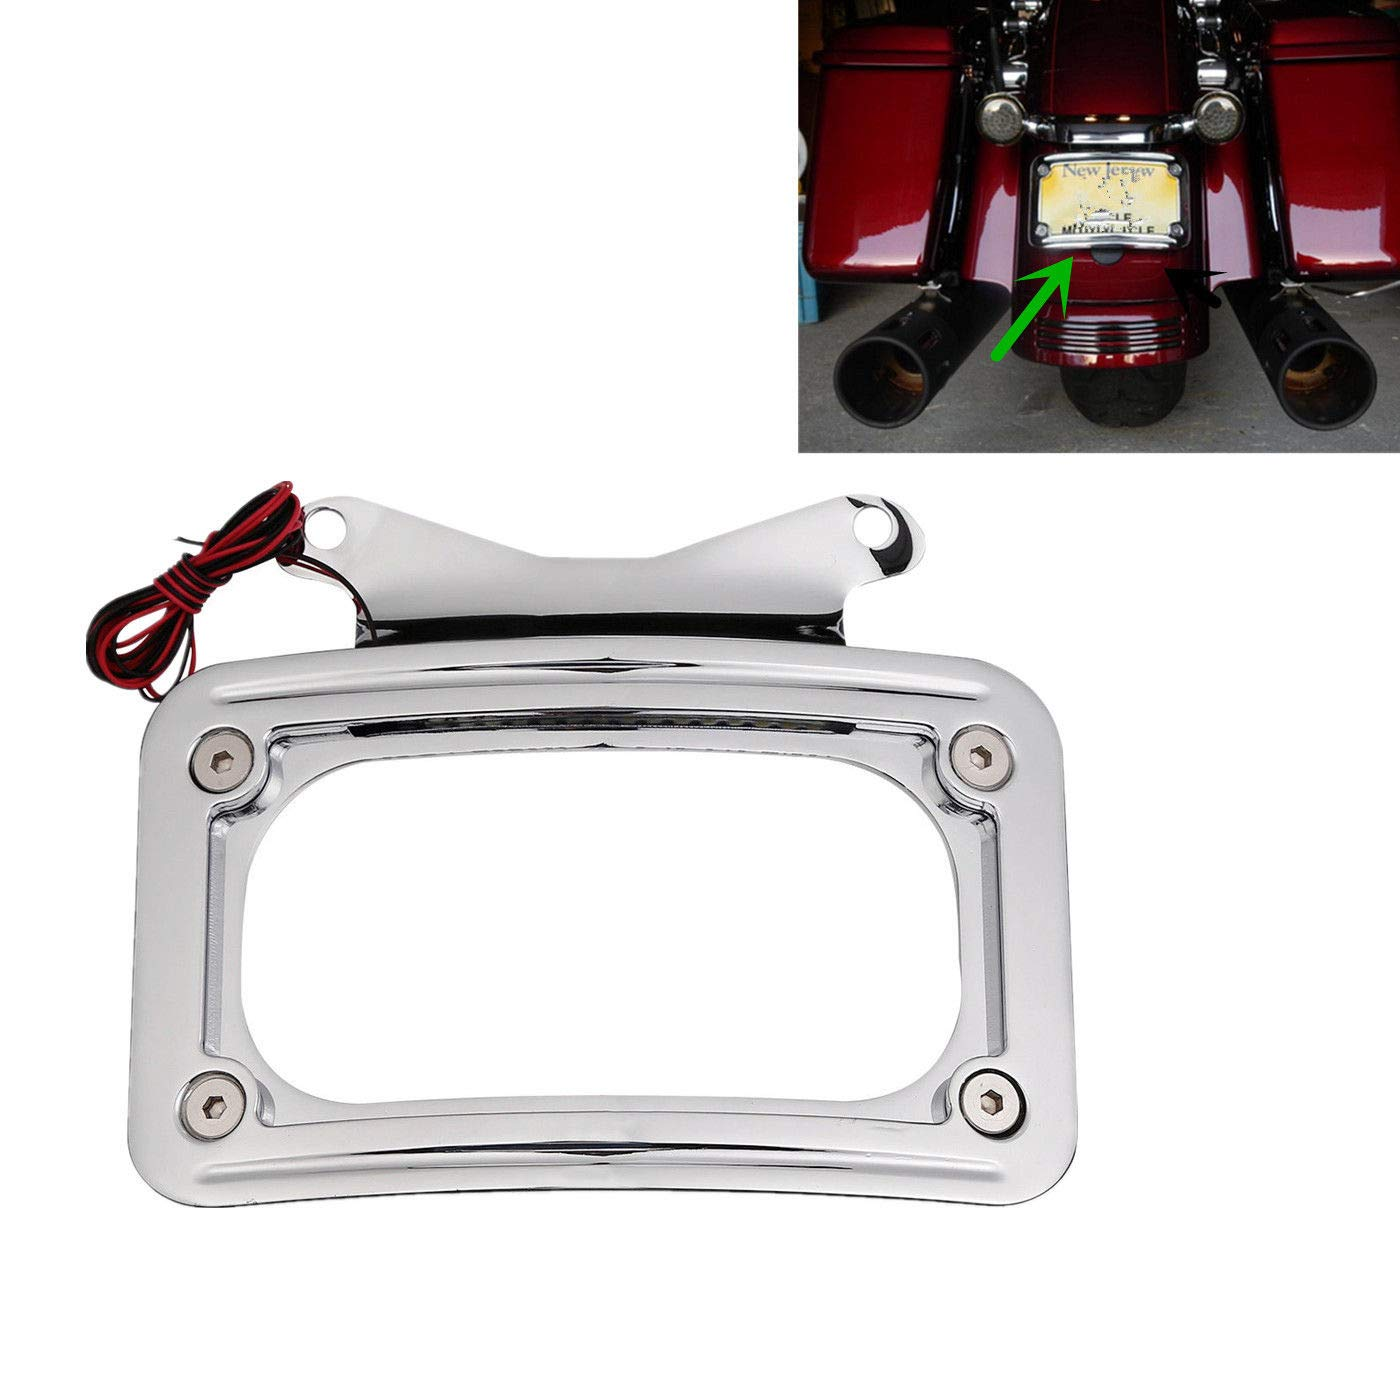 TCMT Curved License Plate Mount Frame W/Light Fits For Harley Street Glide 2010-2018 by TCMT